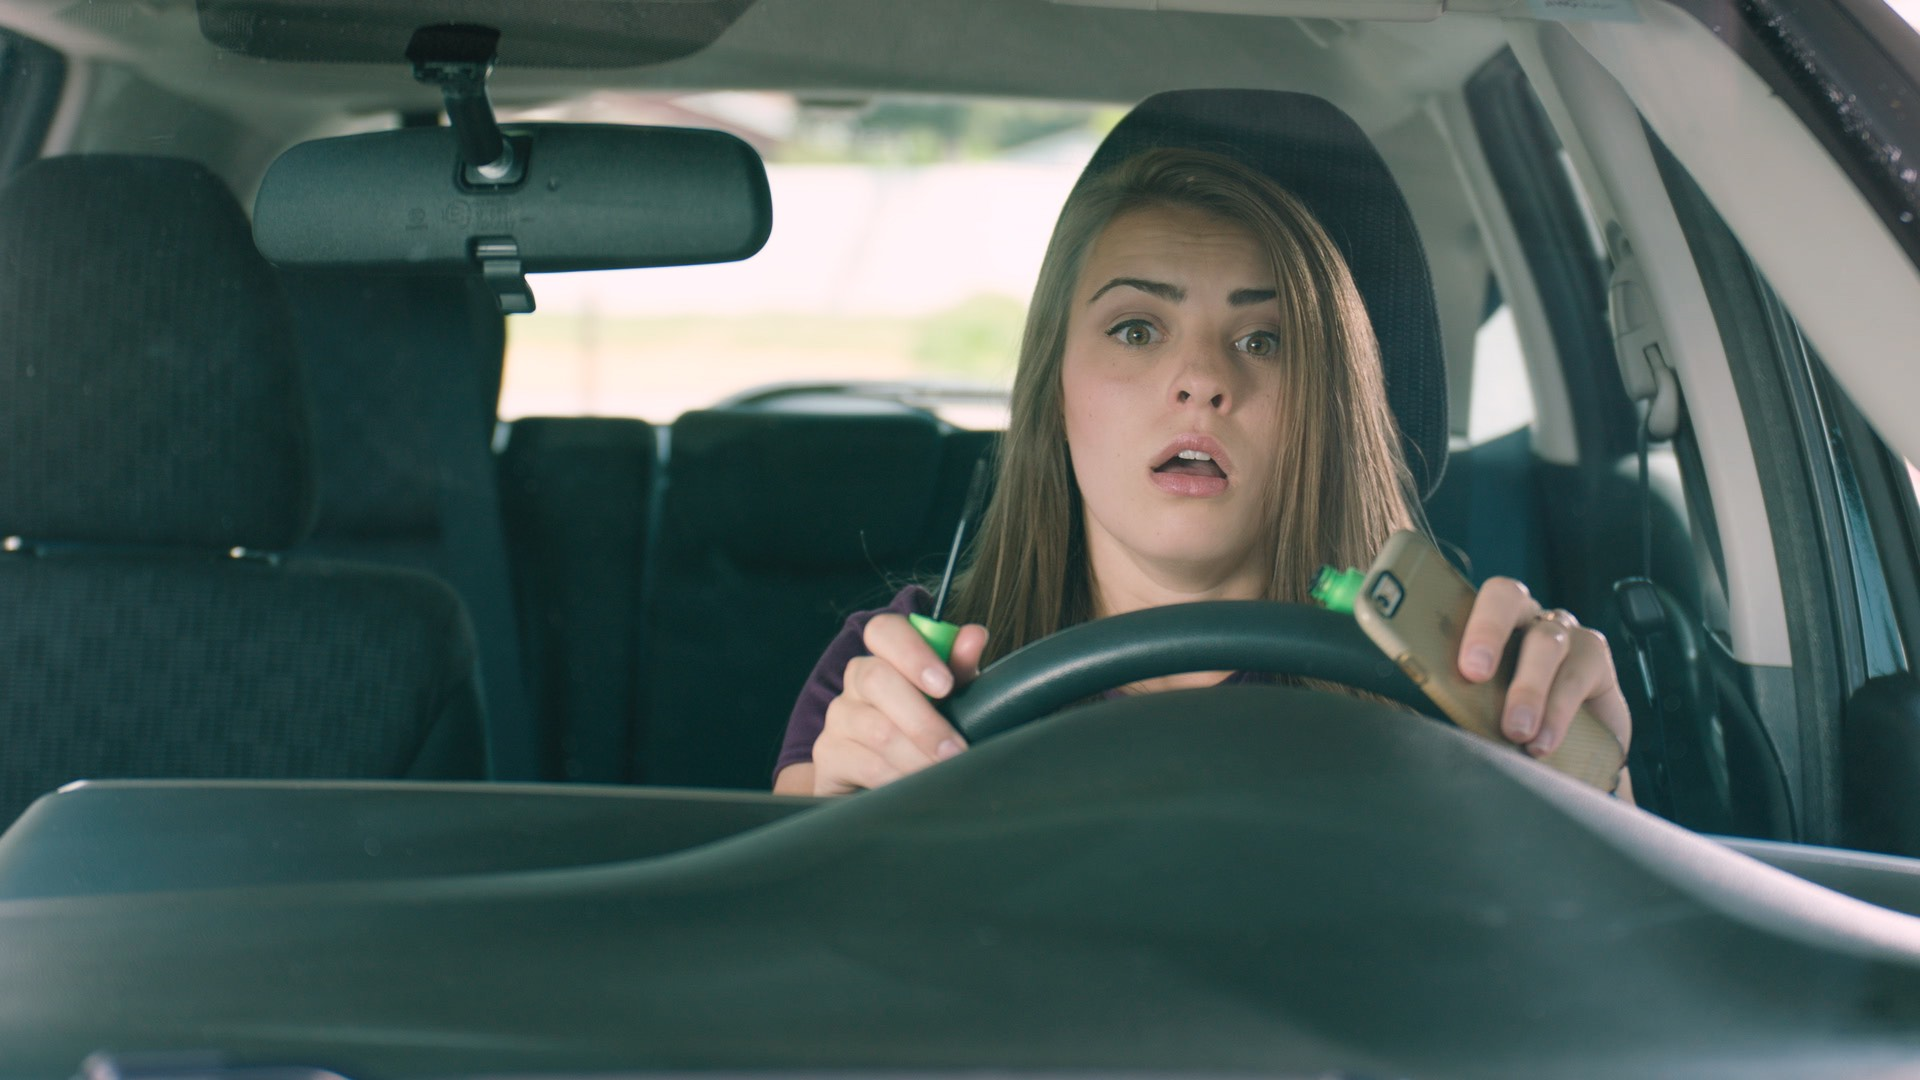 putting on makeup distracted driving